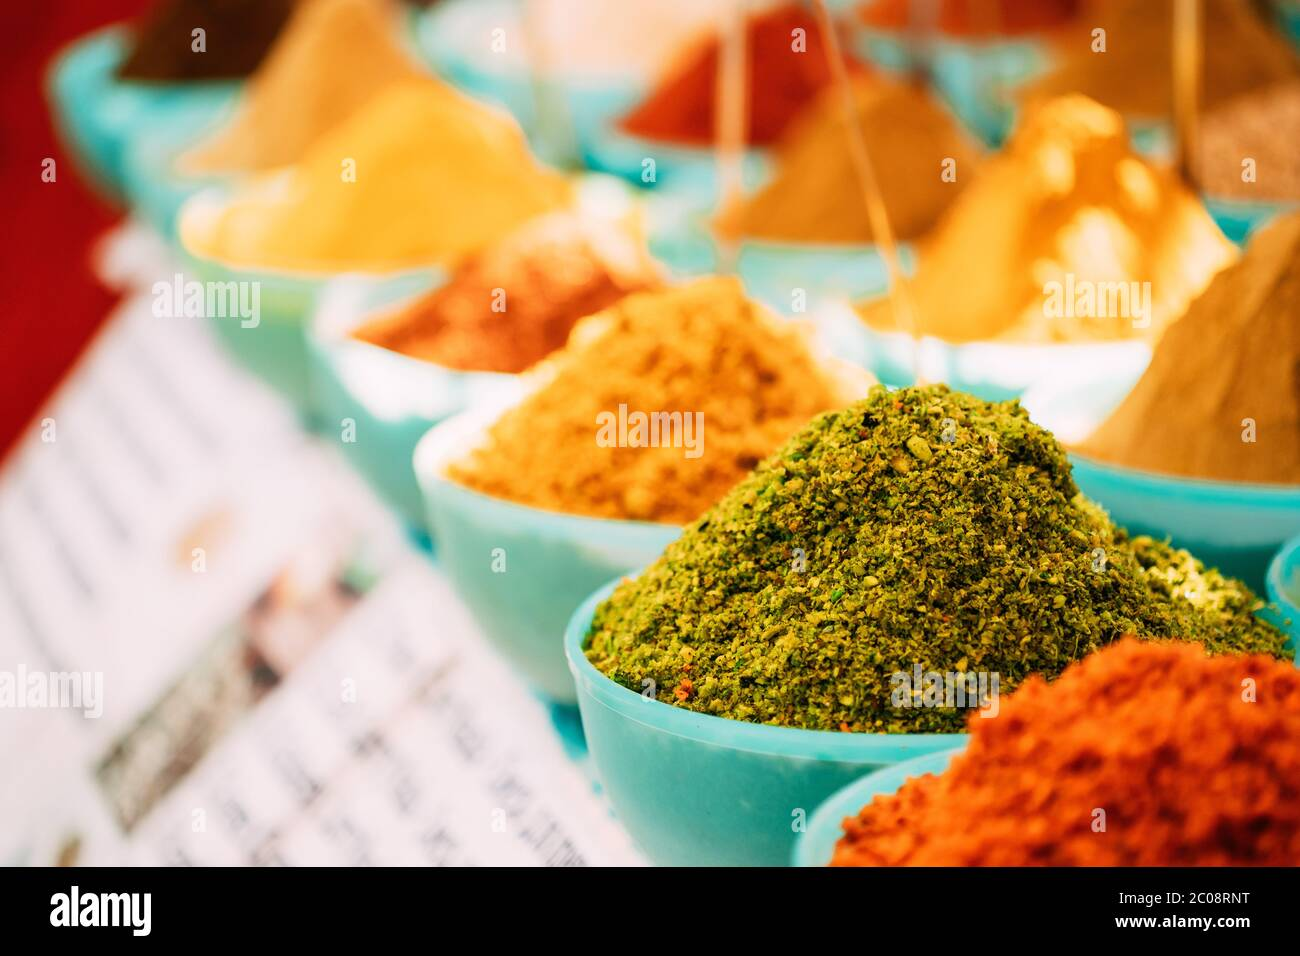 Close View Of Masala Curry, Bright Colors Fragrant Seasoning, Condiment In Tray On Local Food Market, Bazaar Stock Photo